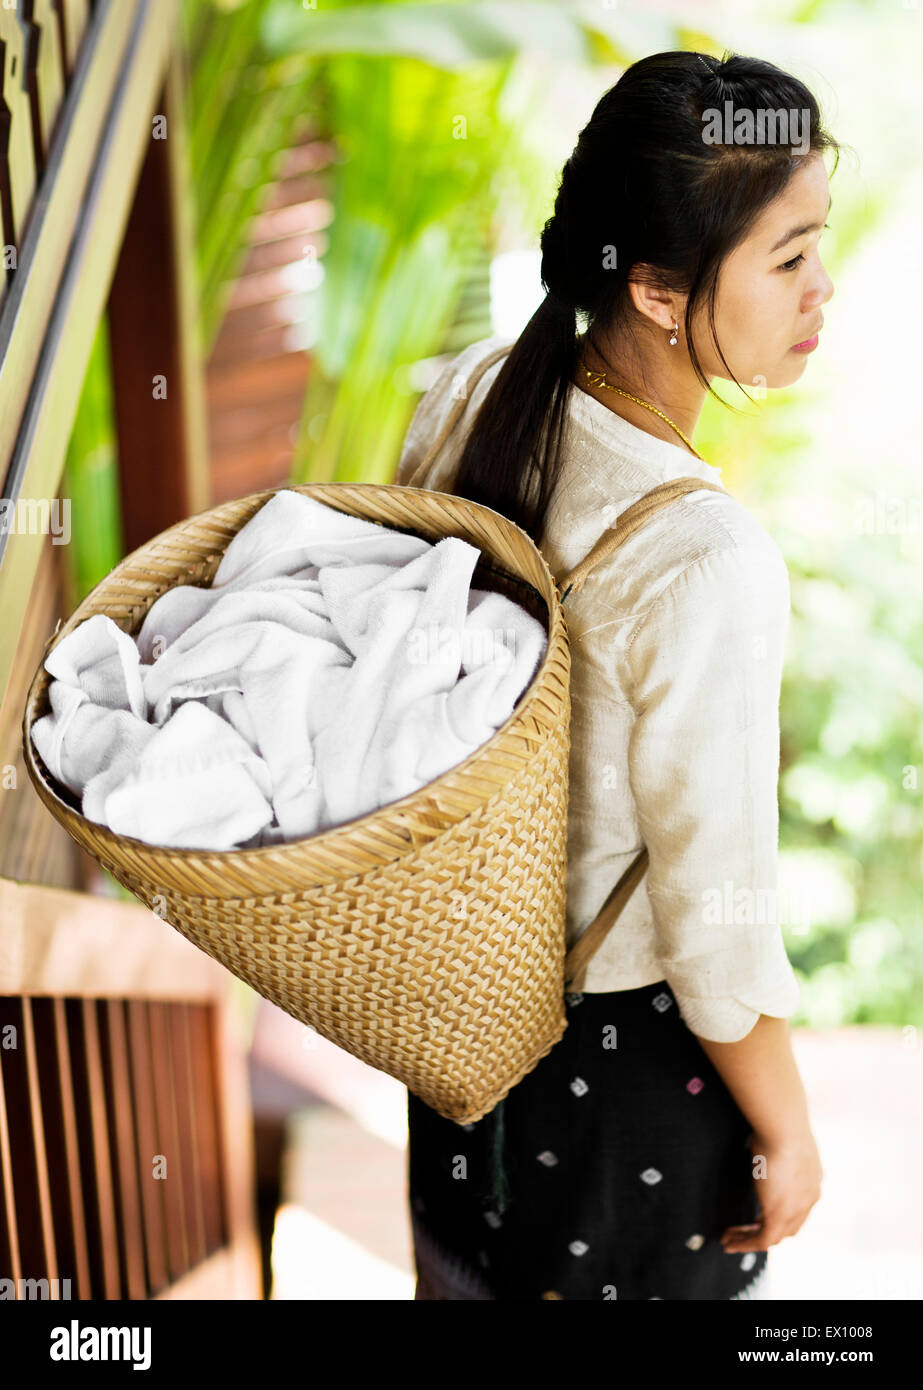 A chamber maid carries room towels in a basket on her back at 3 Nagas by Alila Hotel. Luang Prabang, Laos. - Stock Image